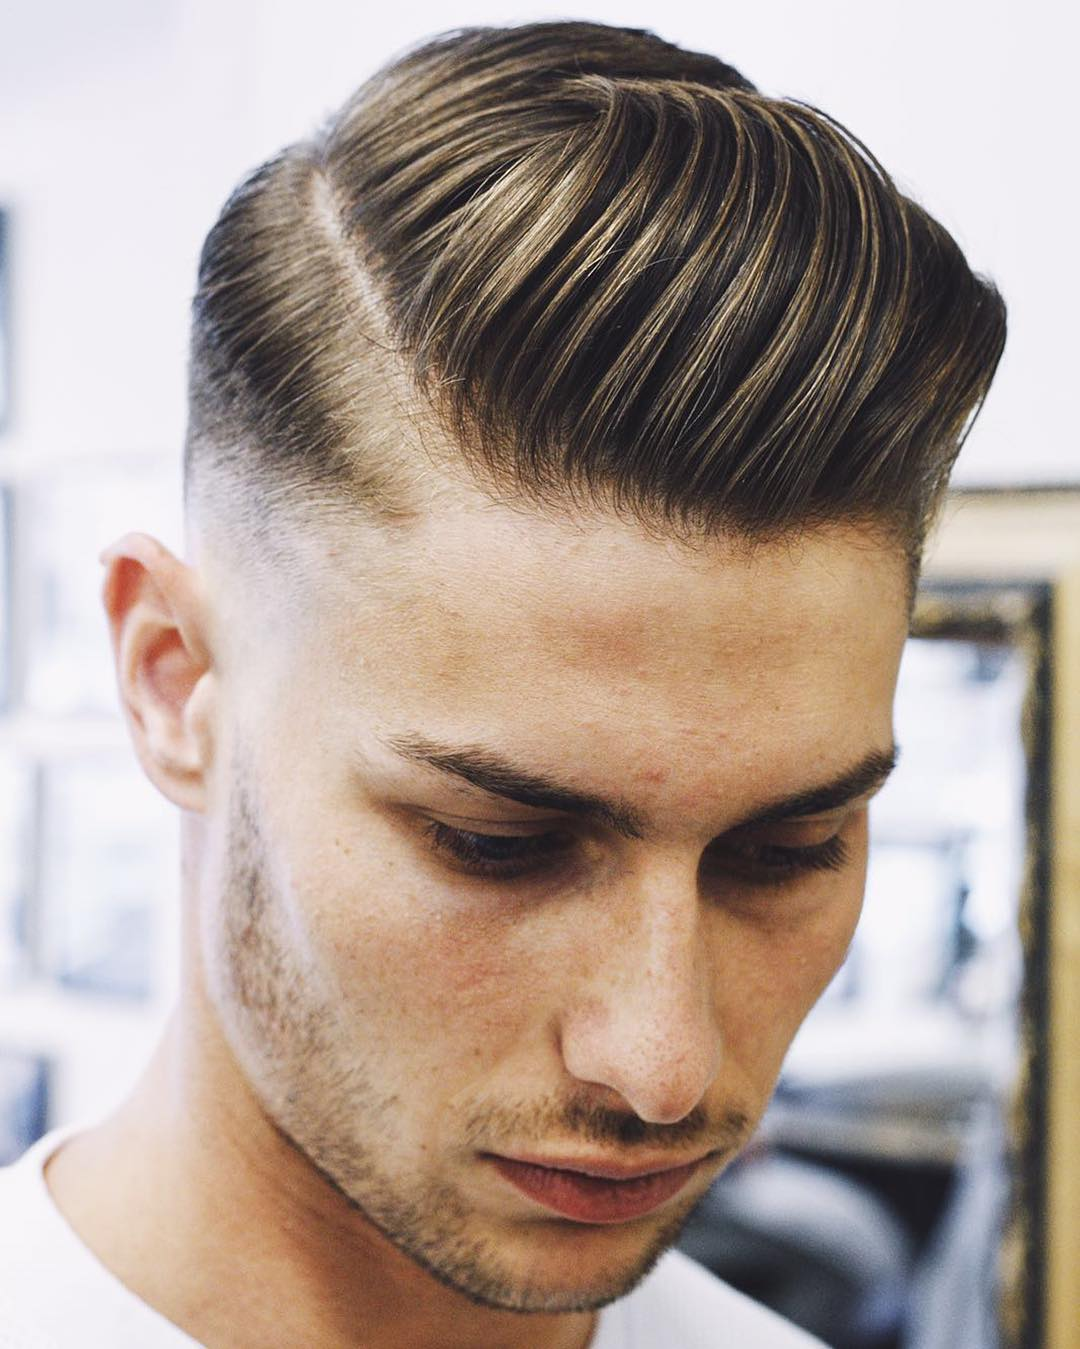 Haircuts Hairstyles Top 100 Men S Haircuts Hairstyles For Men May 2019 Update